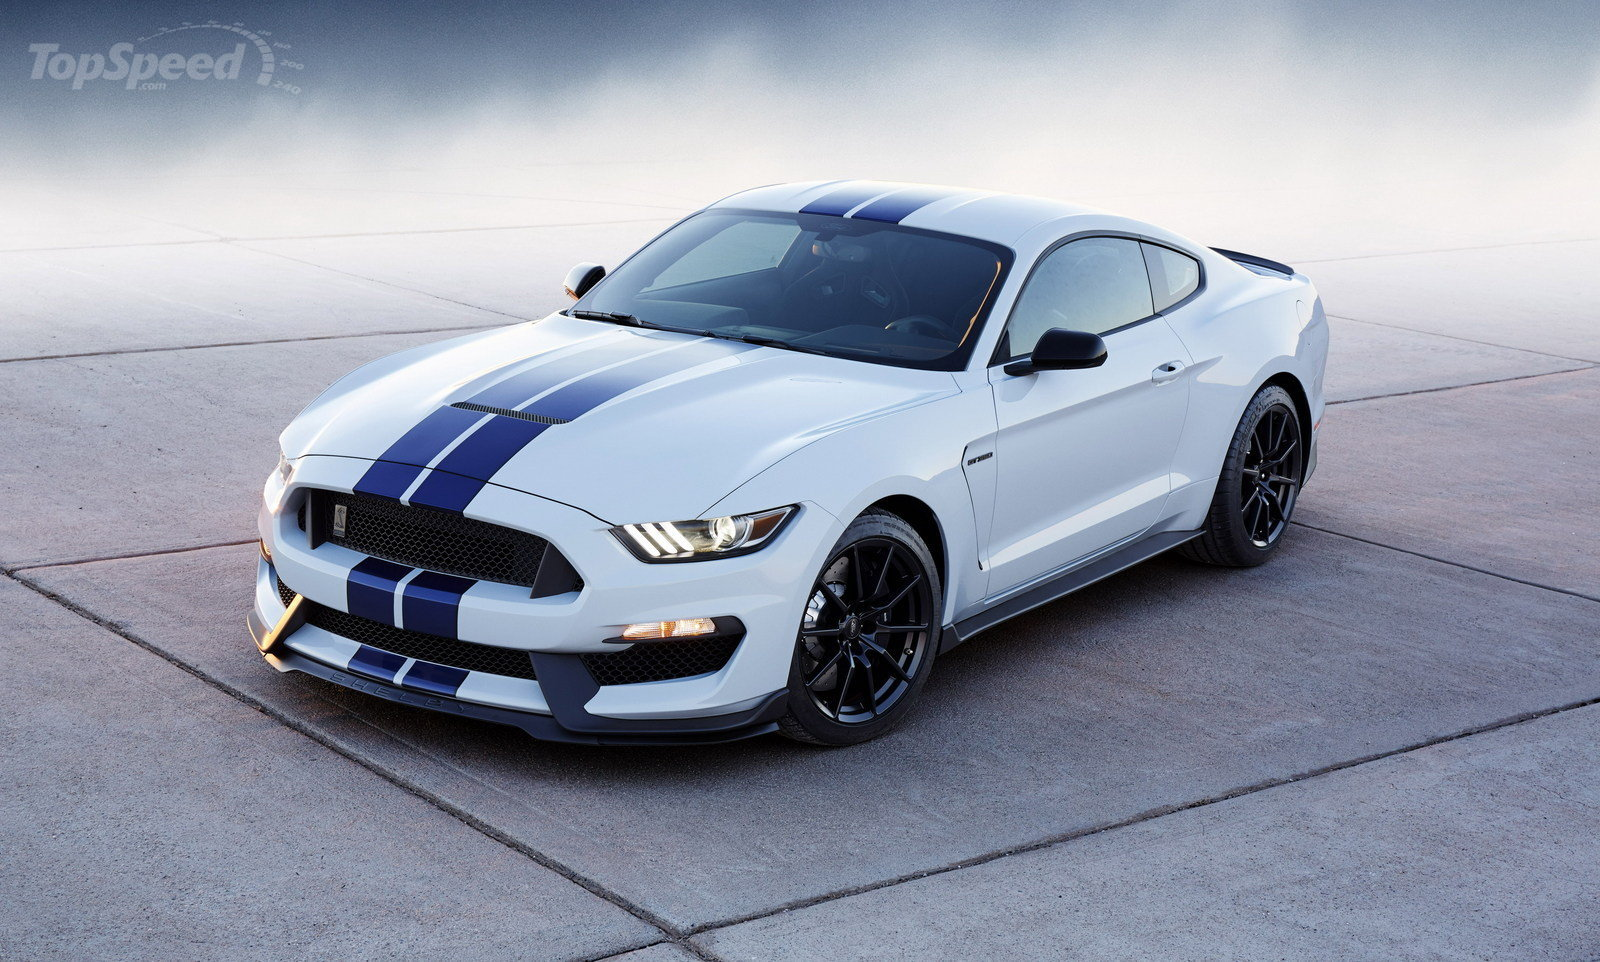 2017 Ford Mustang Shelby GT Convertible photo - 2